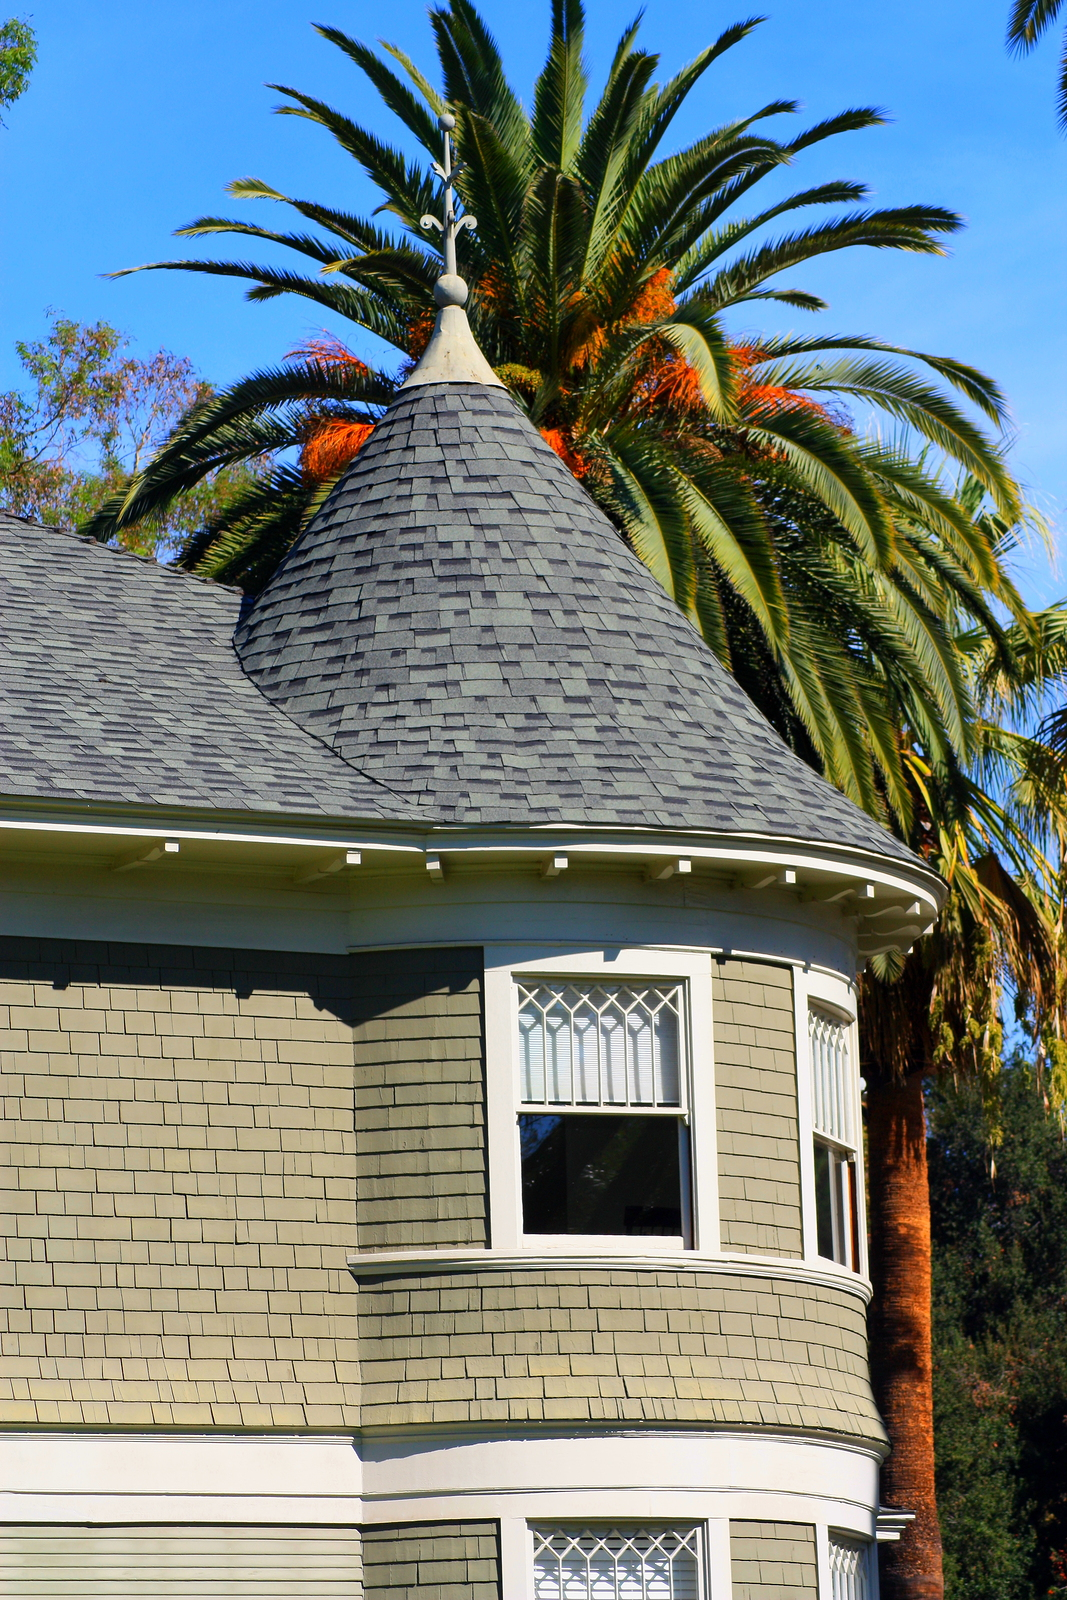 Search Claremont homes and Claremont real estate.